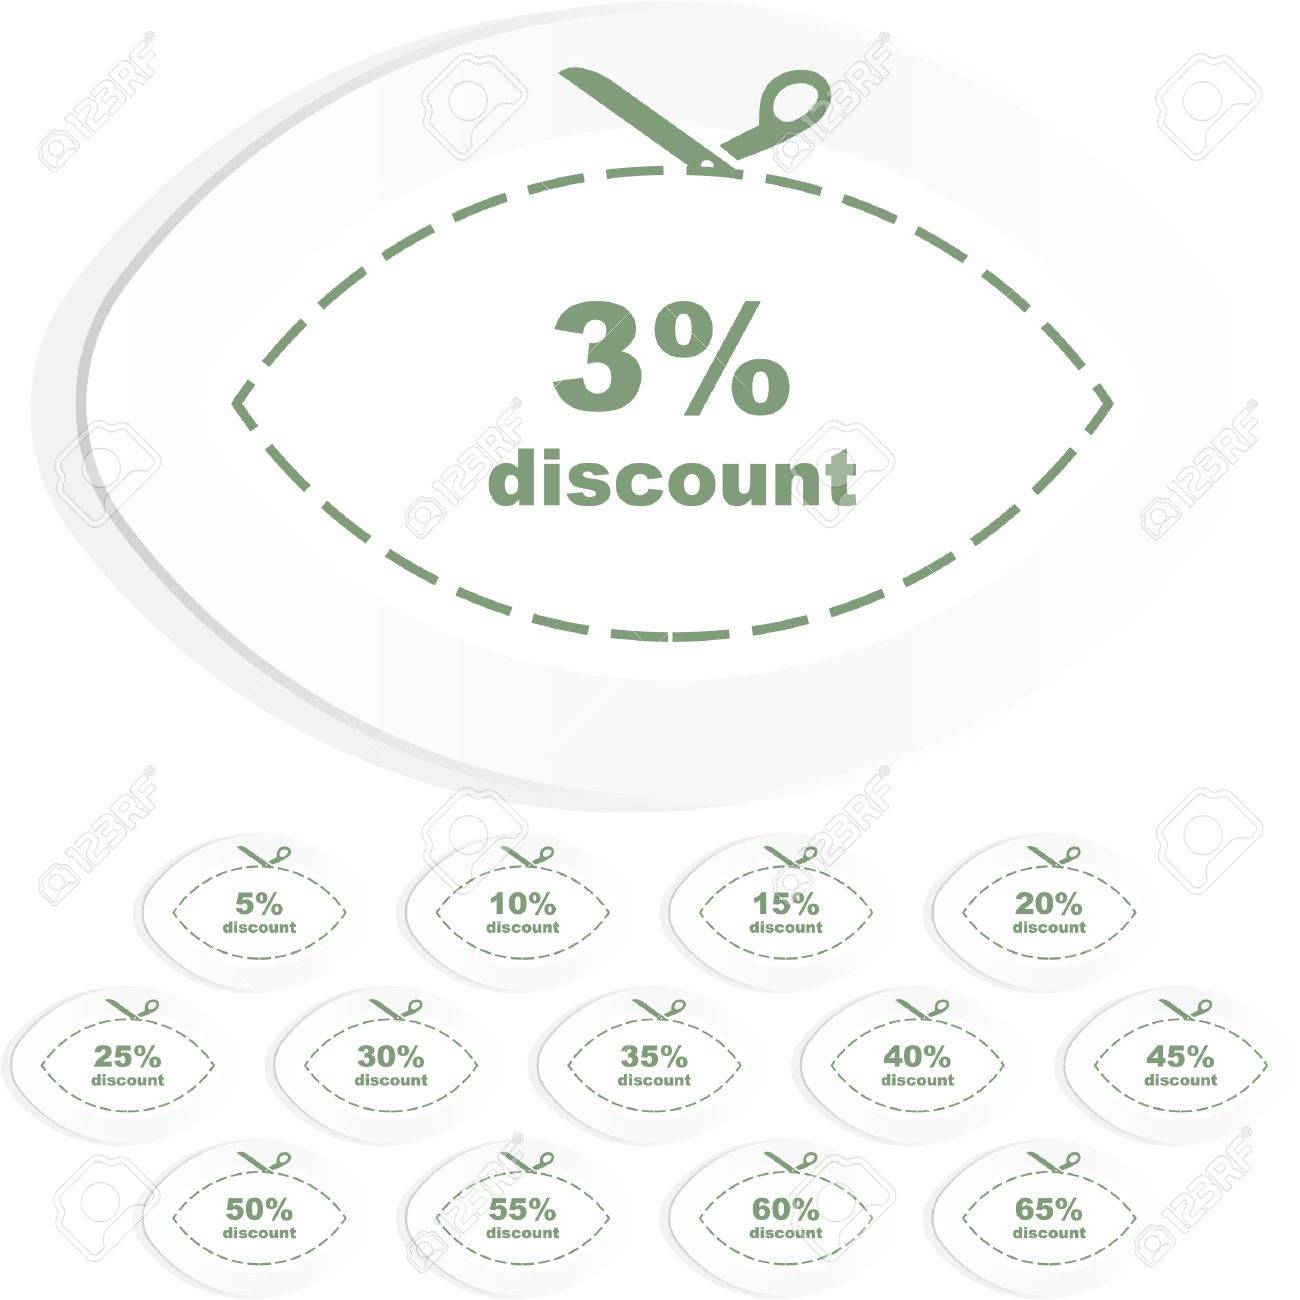 Discount label templates with different percentages Stock Vector - 9039198